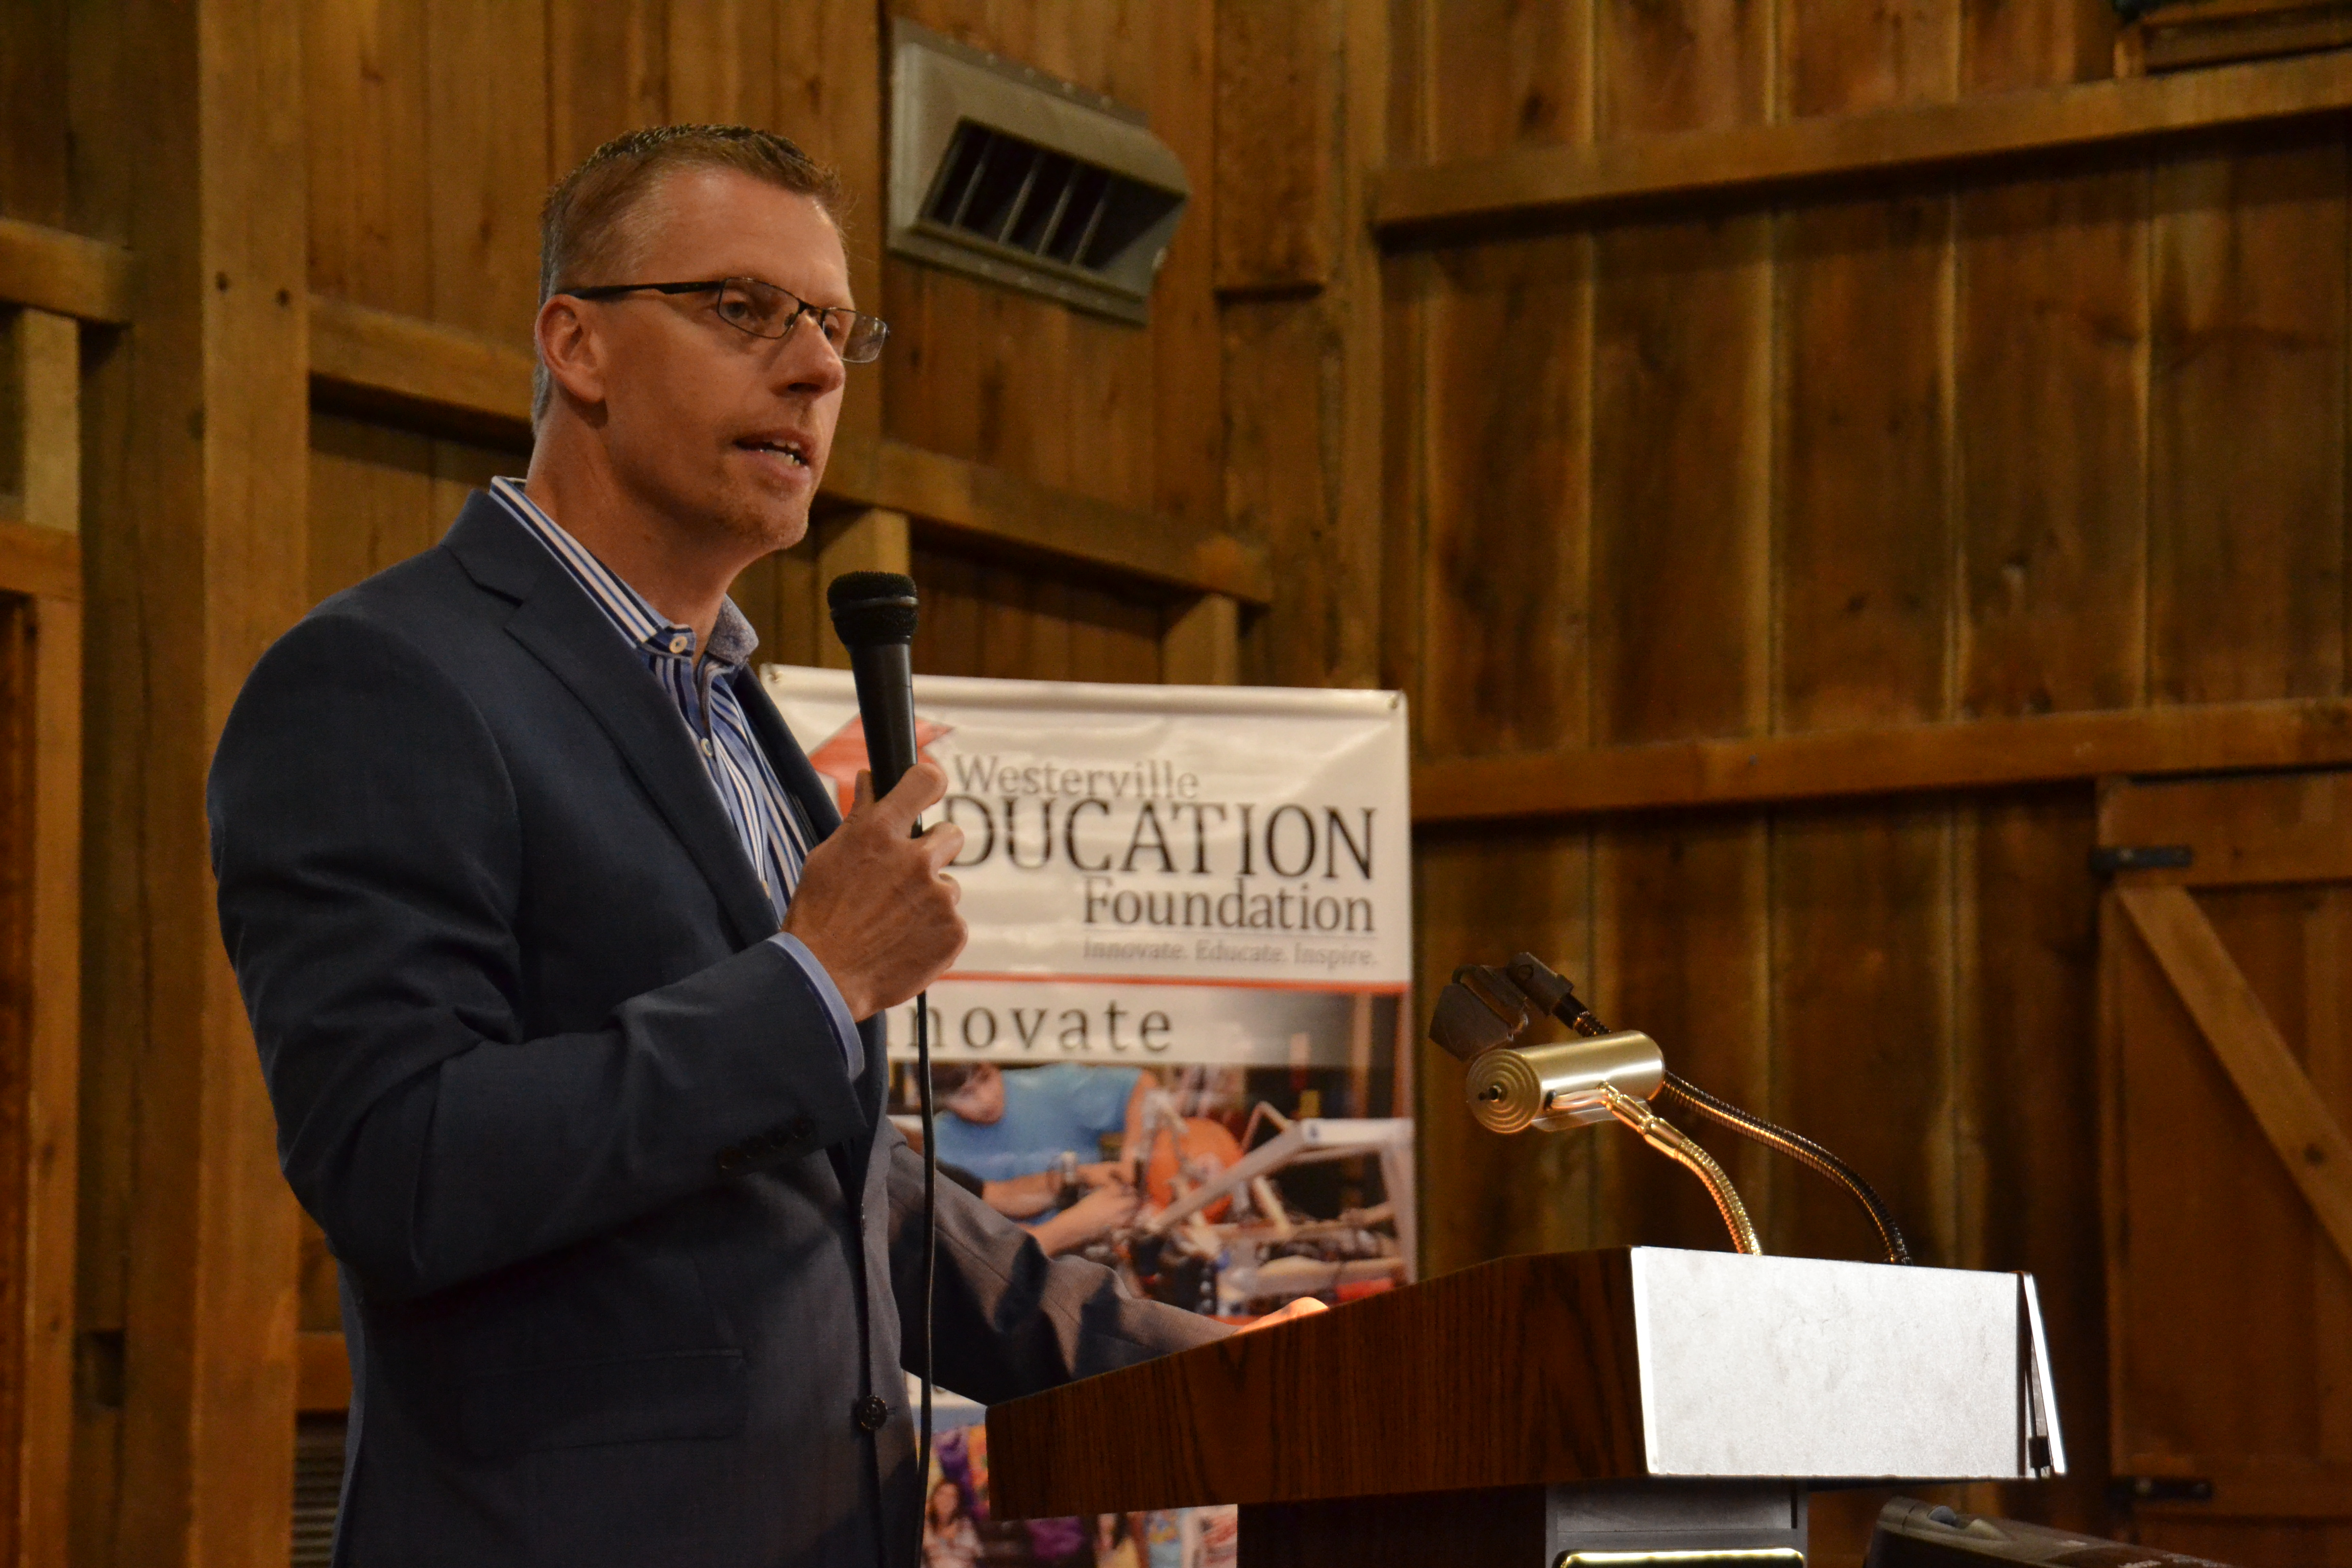 Westerville Education Foundation Honors, Celebrates Educators during Annual Breakfast